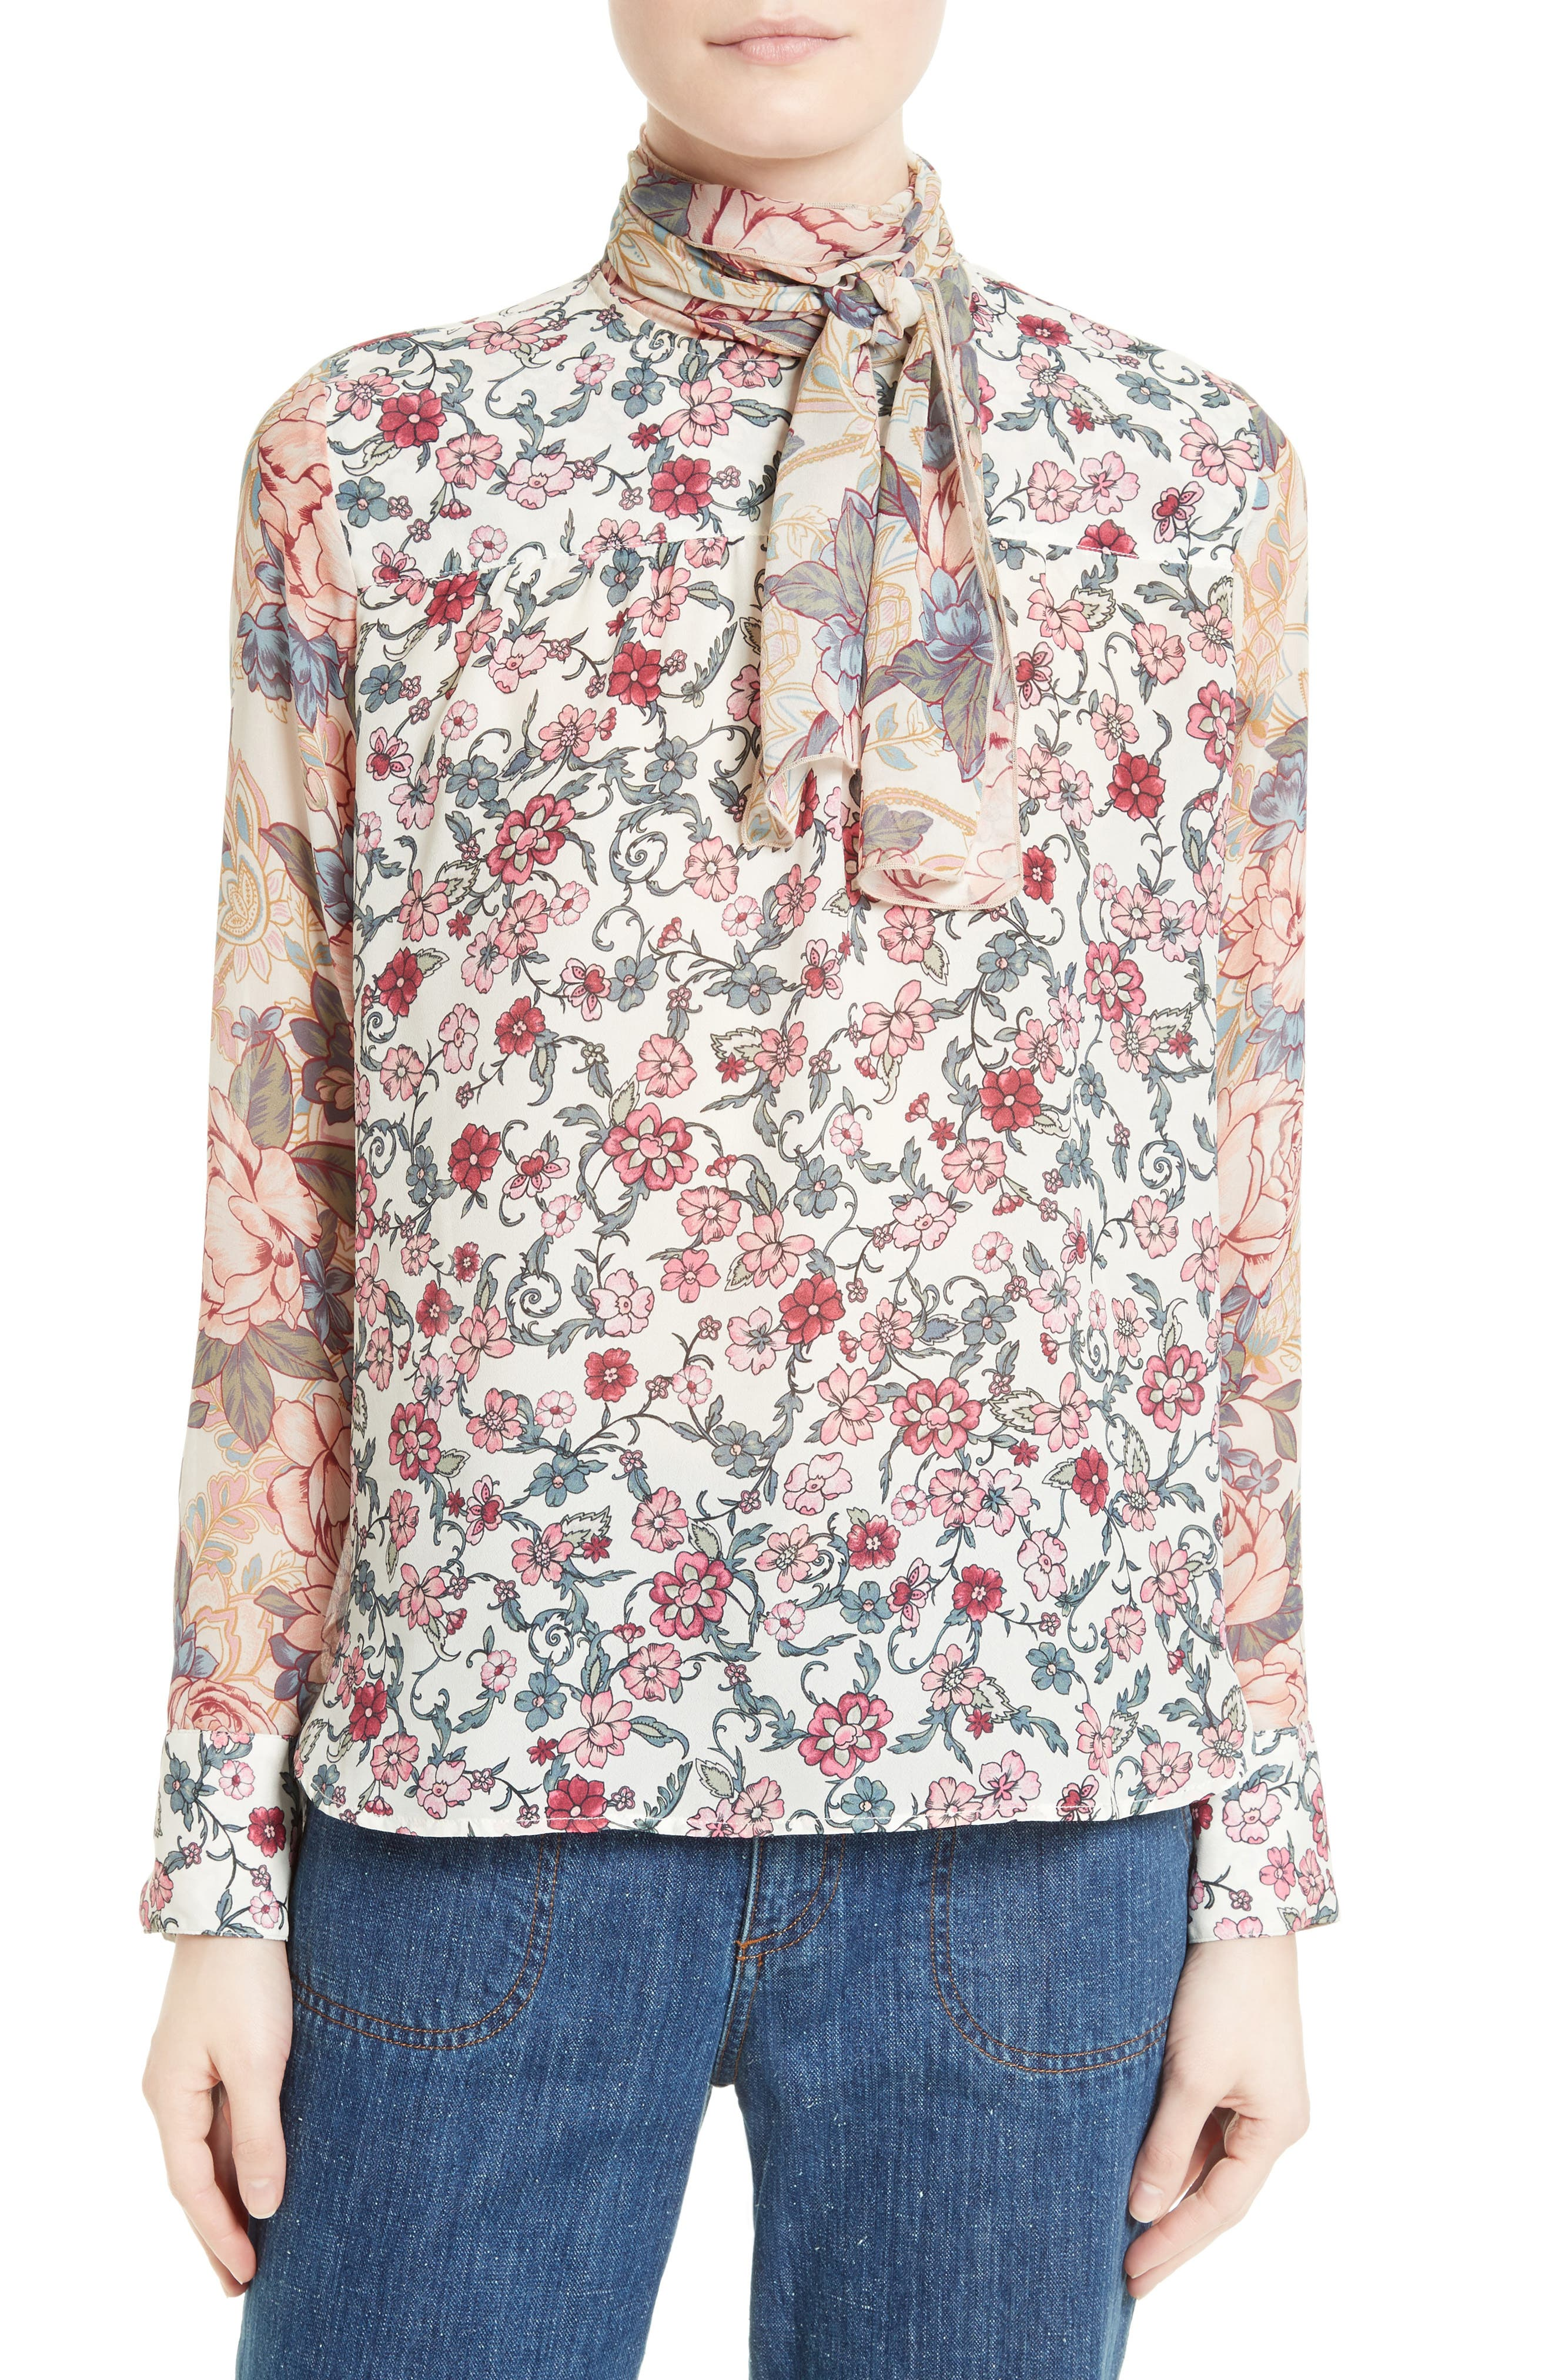 Main Image - See by Chloé Floral Tie Neck Blouse